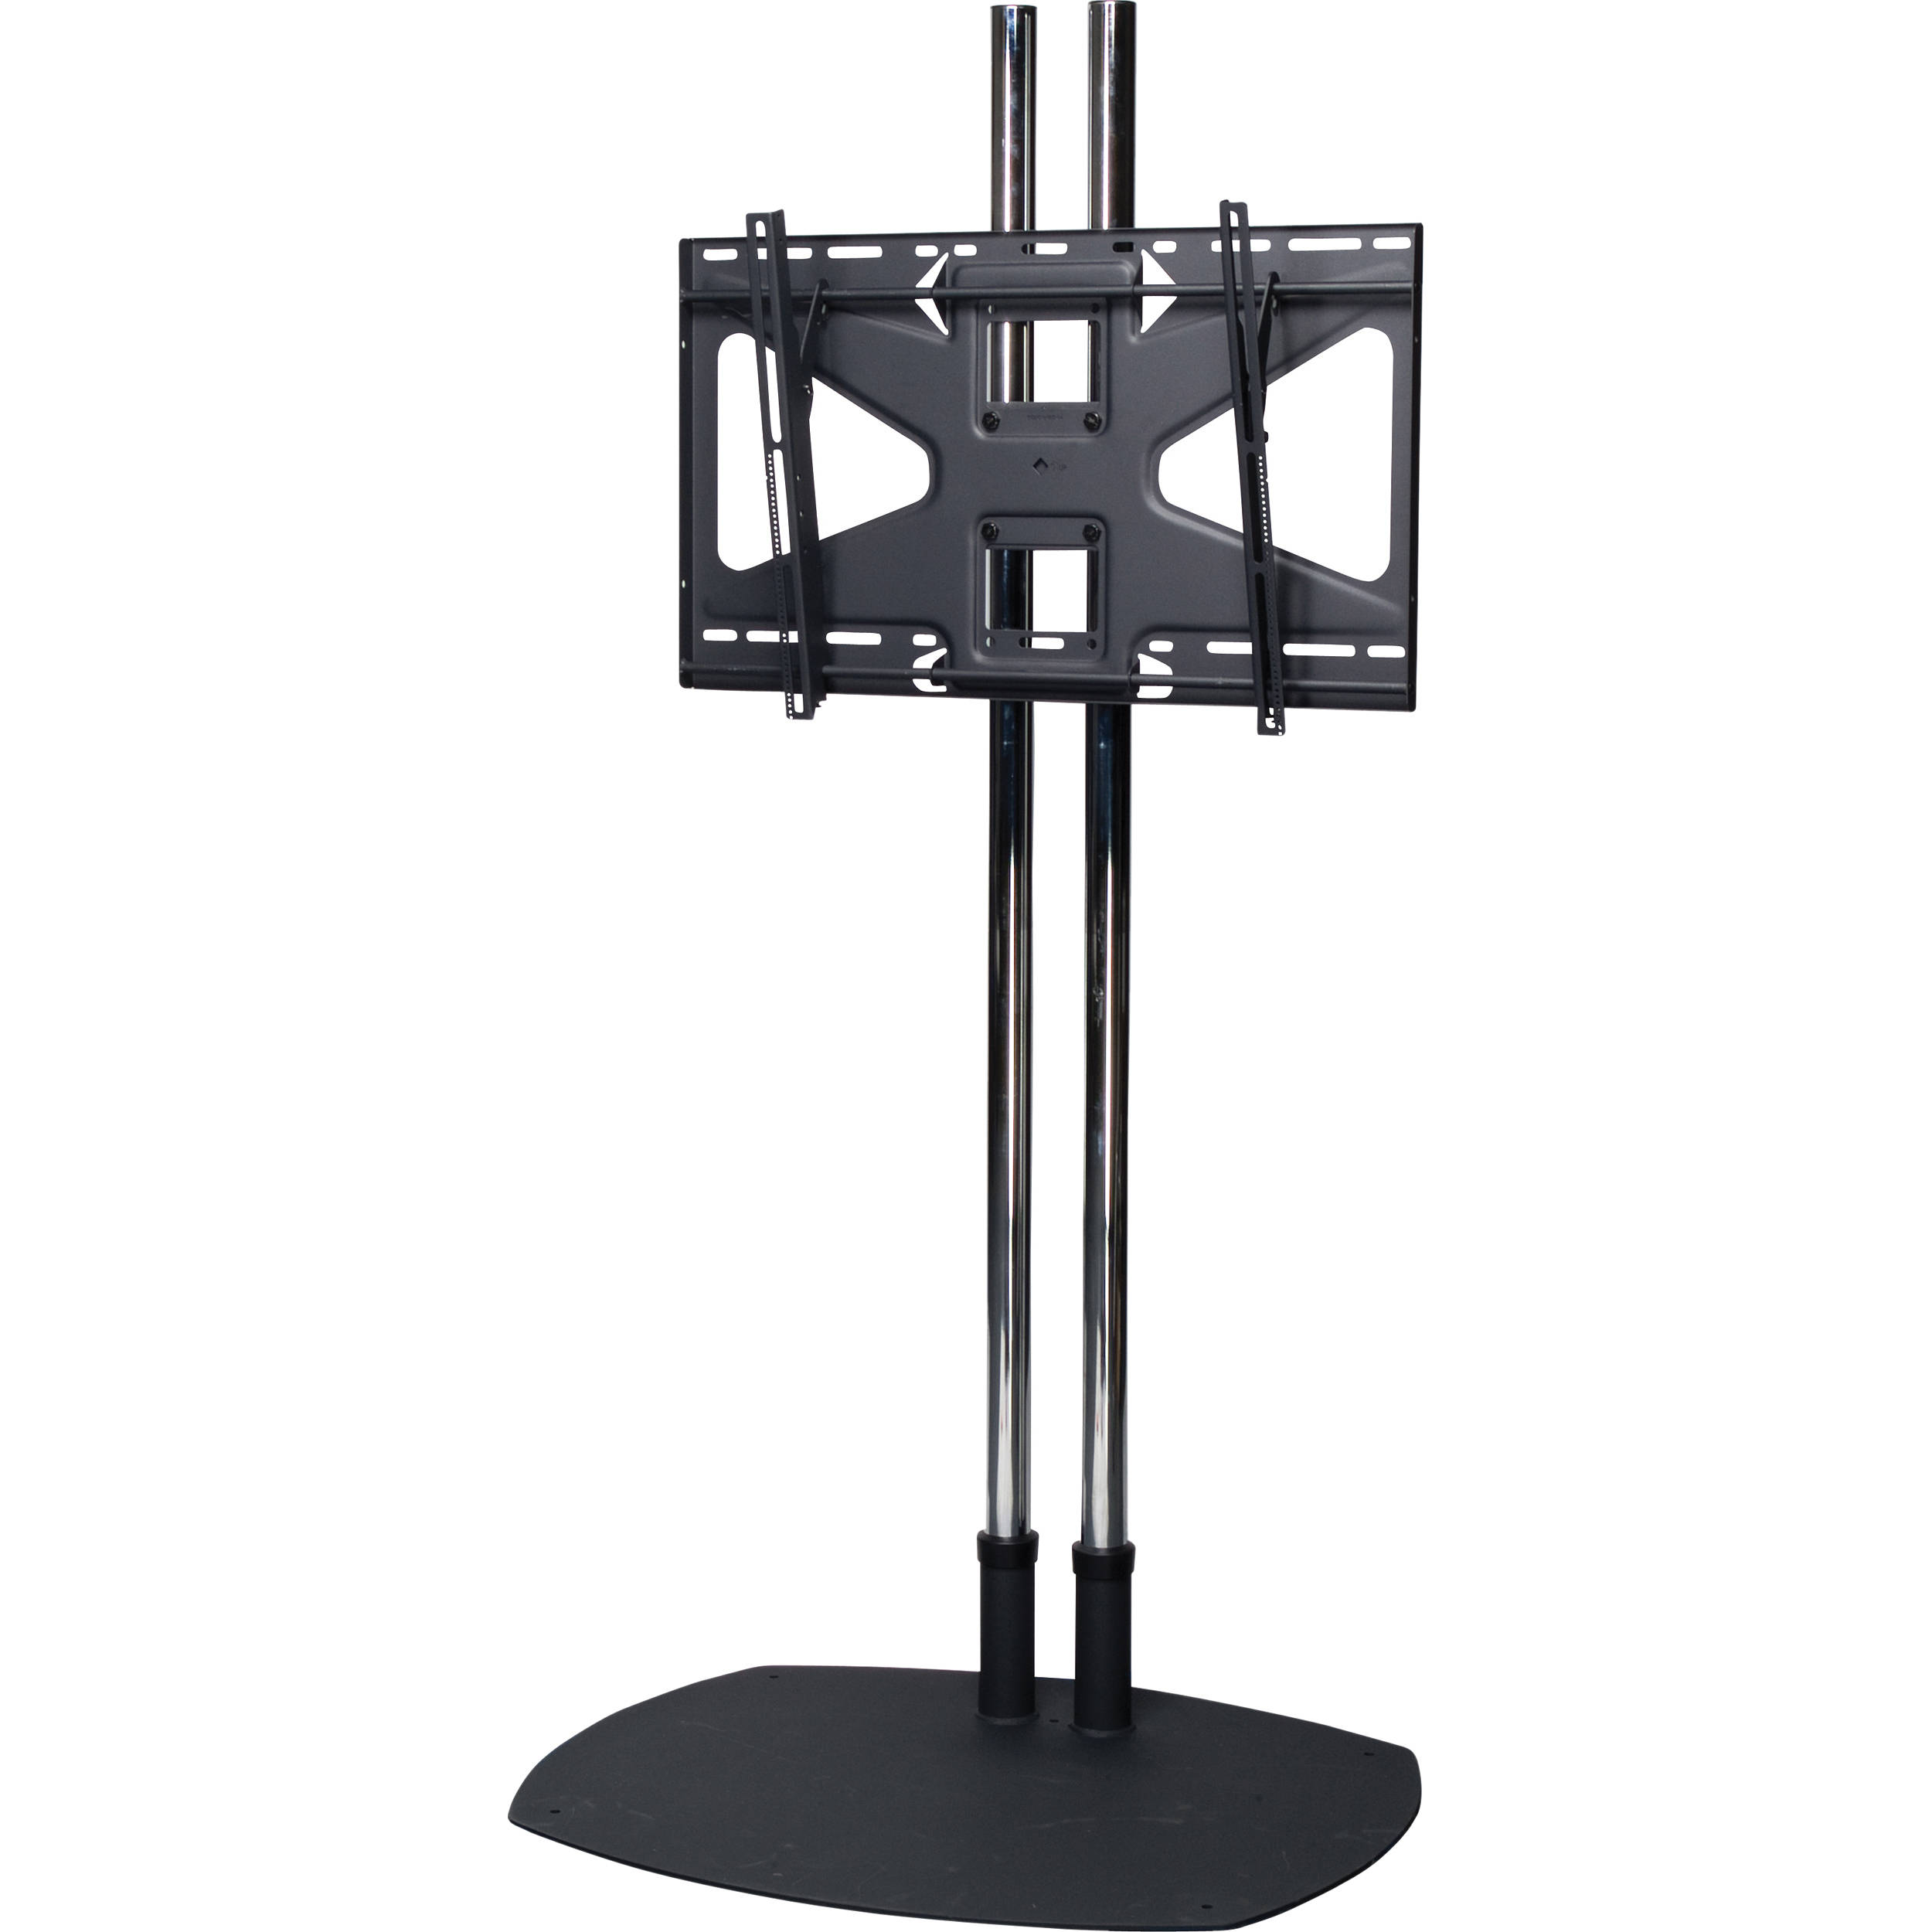 Premier mounts ts84 ms2 floor stand combination ts84 ms2 b h for Stand 2 b